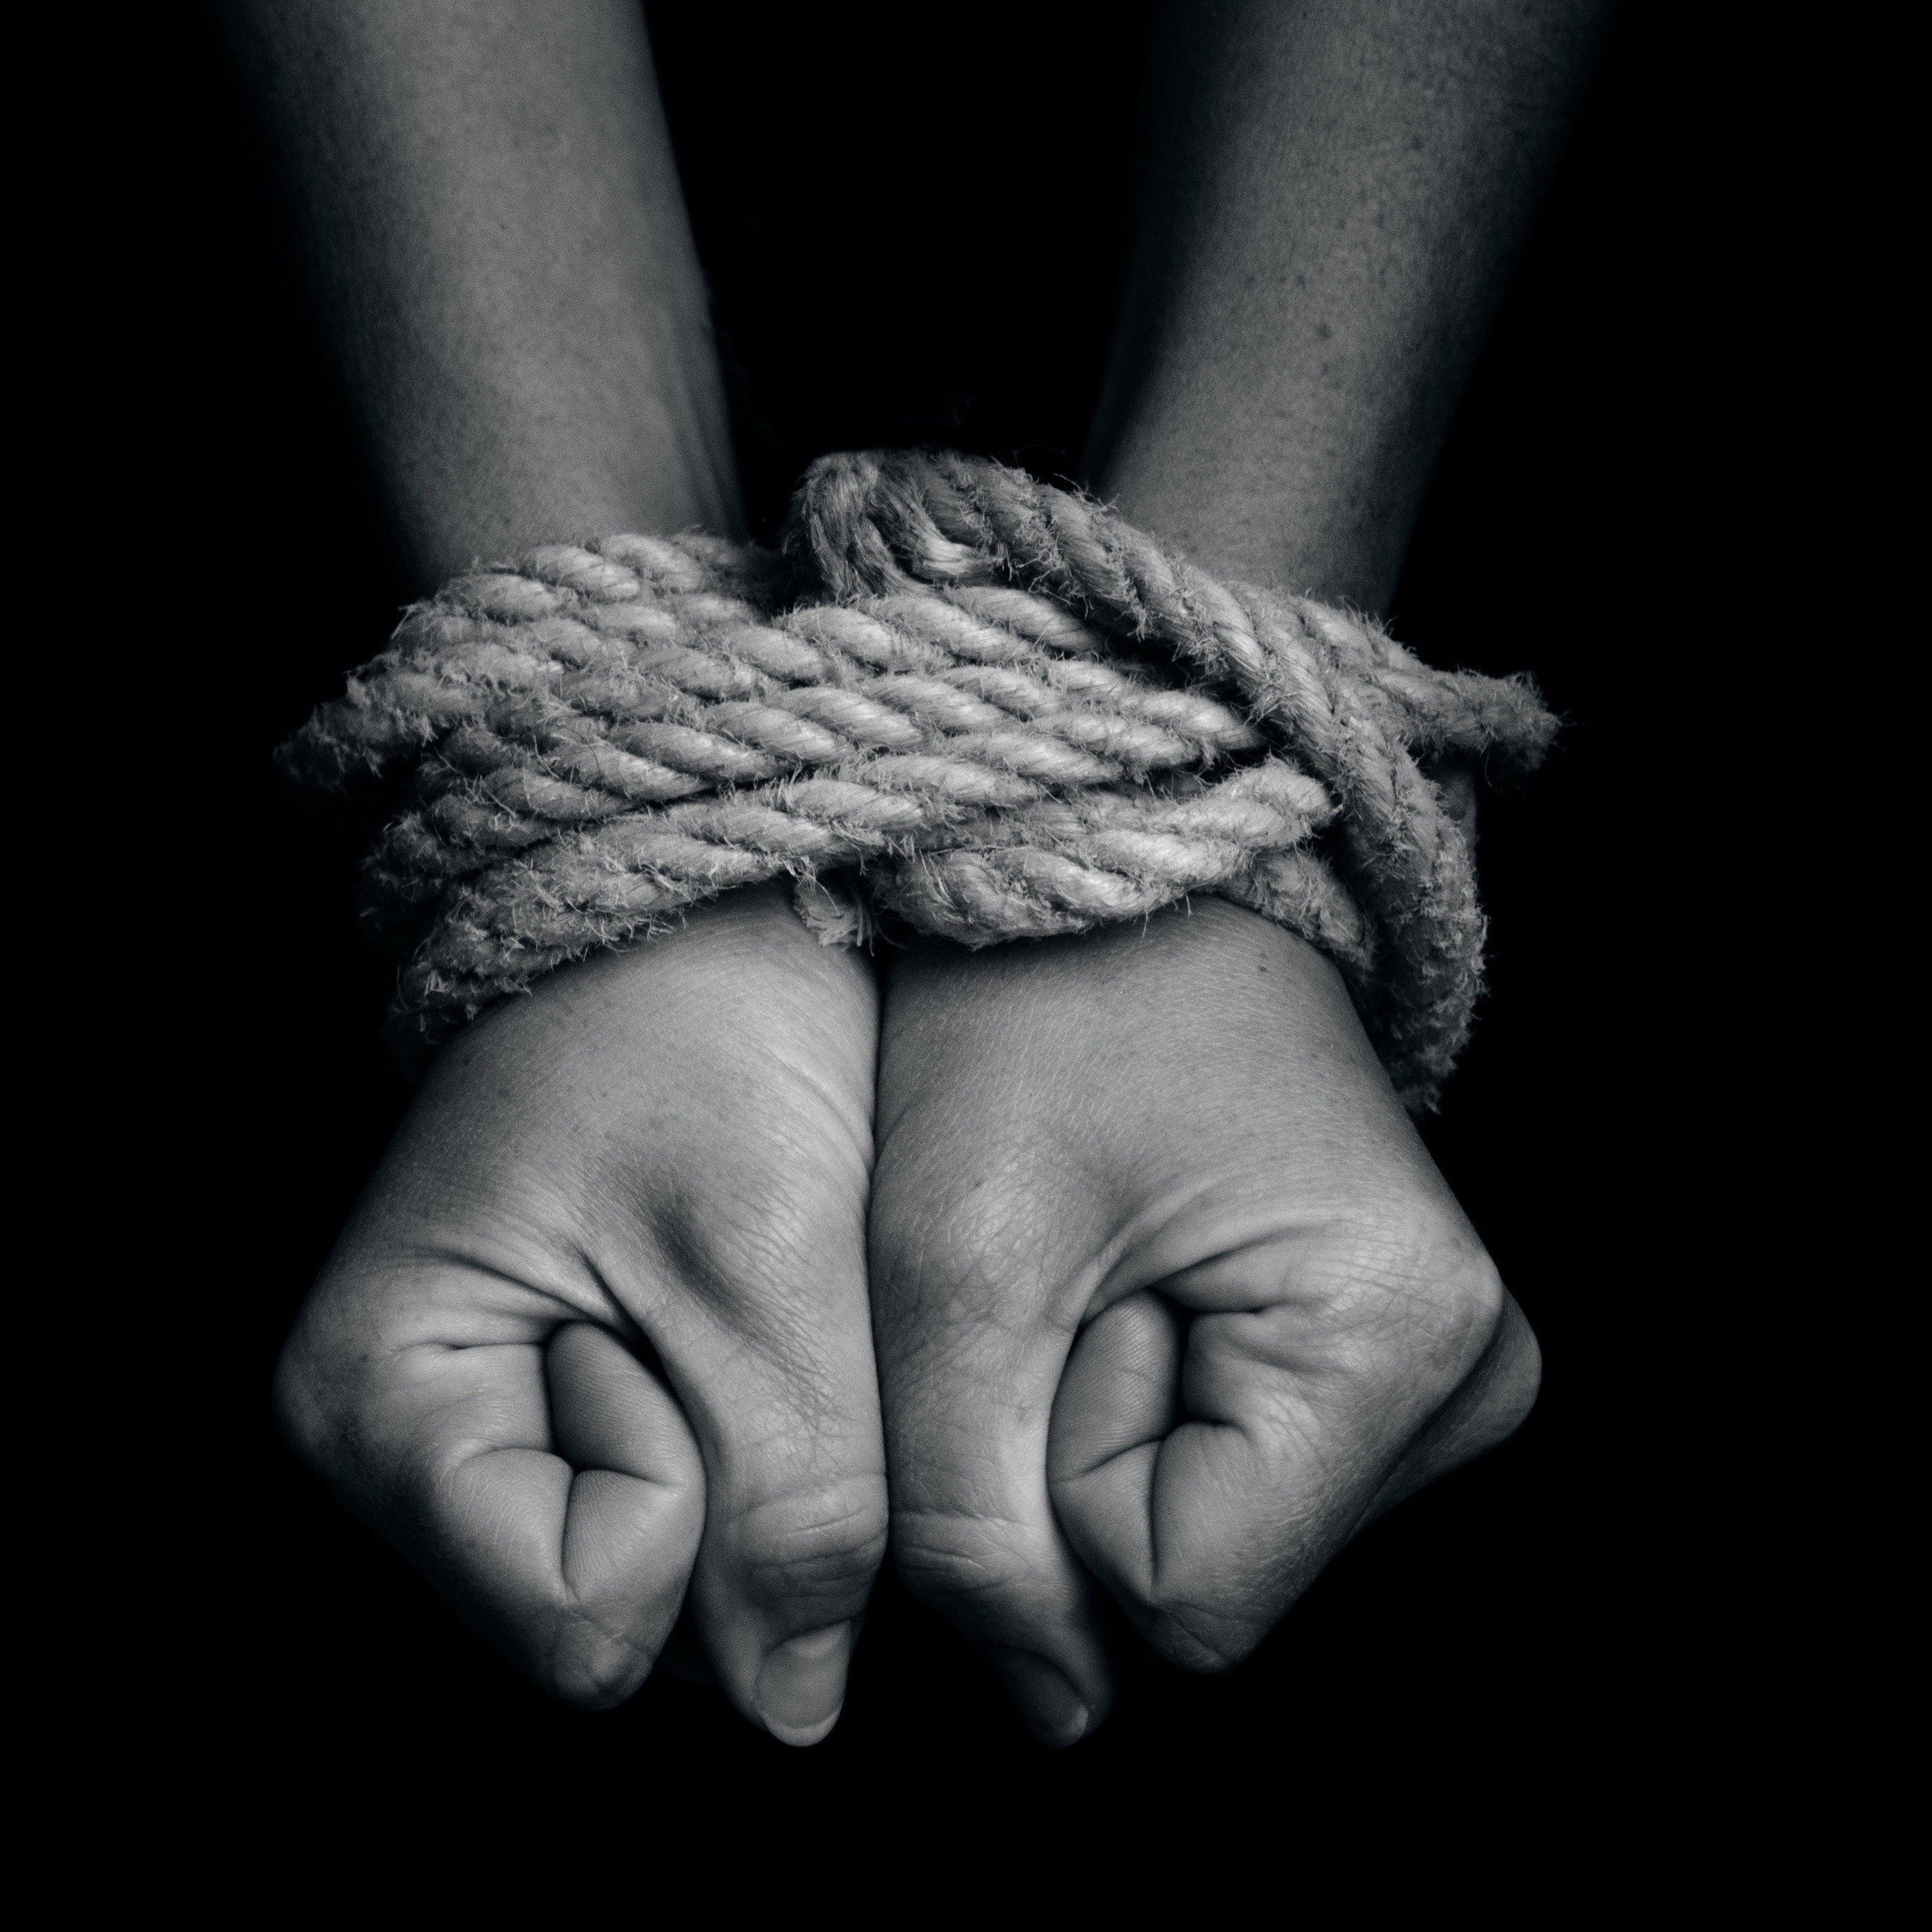 Bulgaria, North Macedonia to co-operate in fight against human trafficking